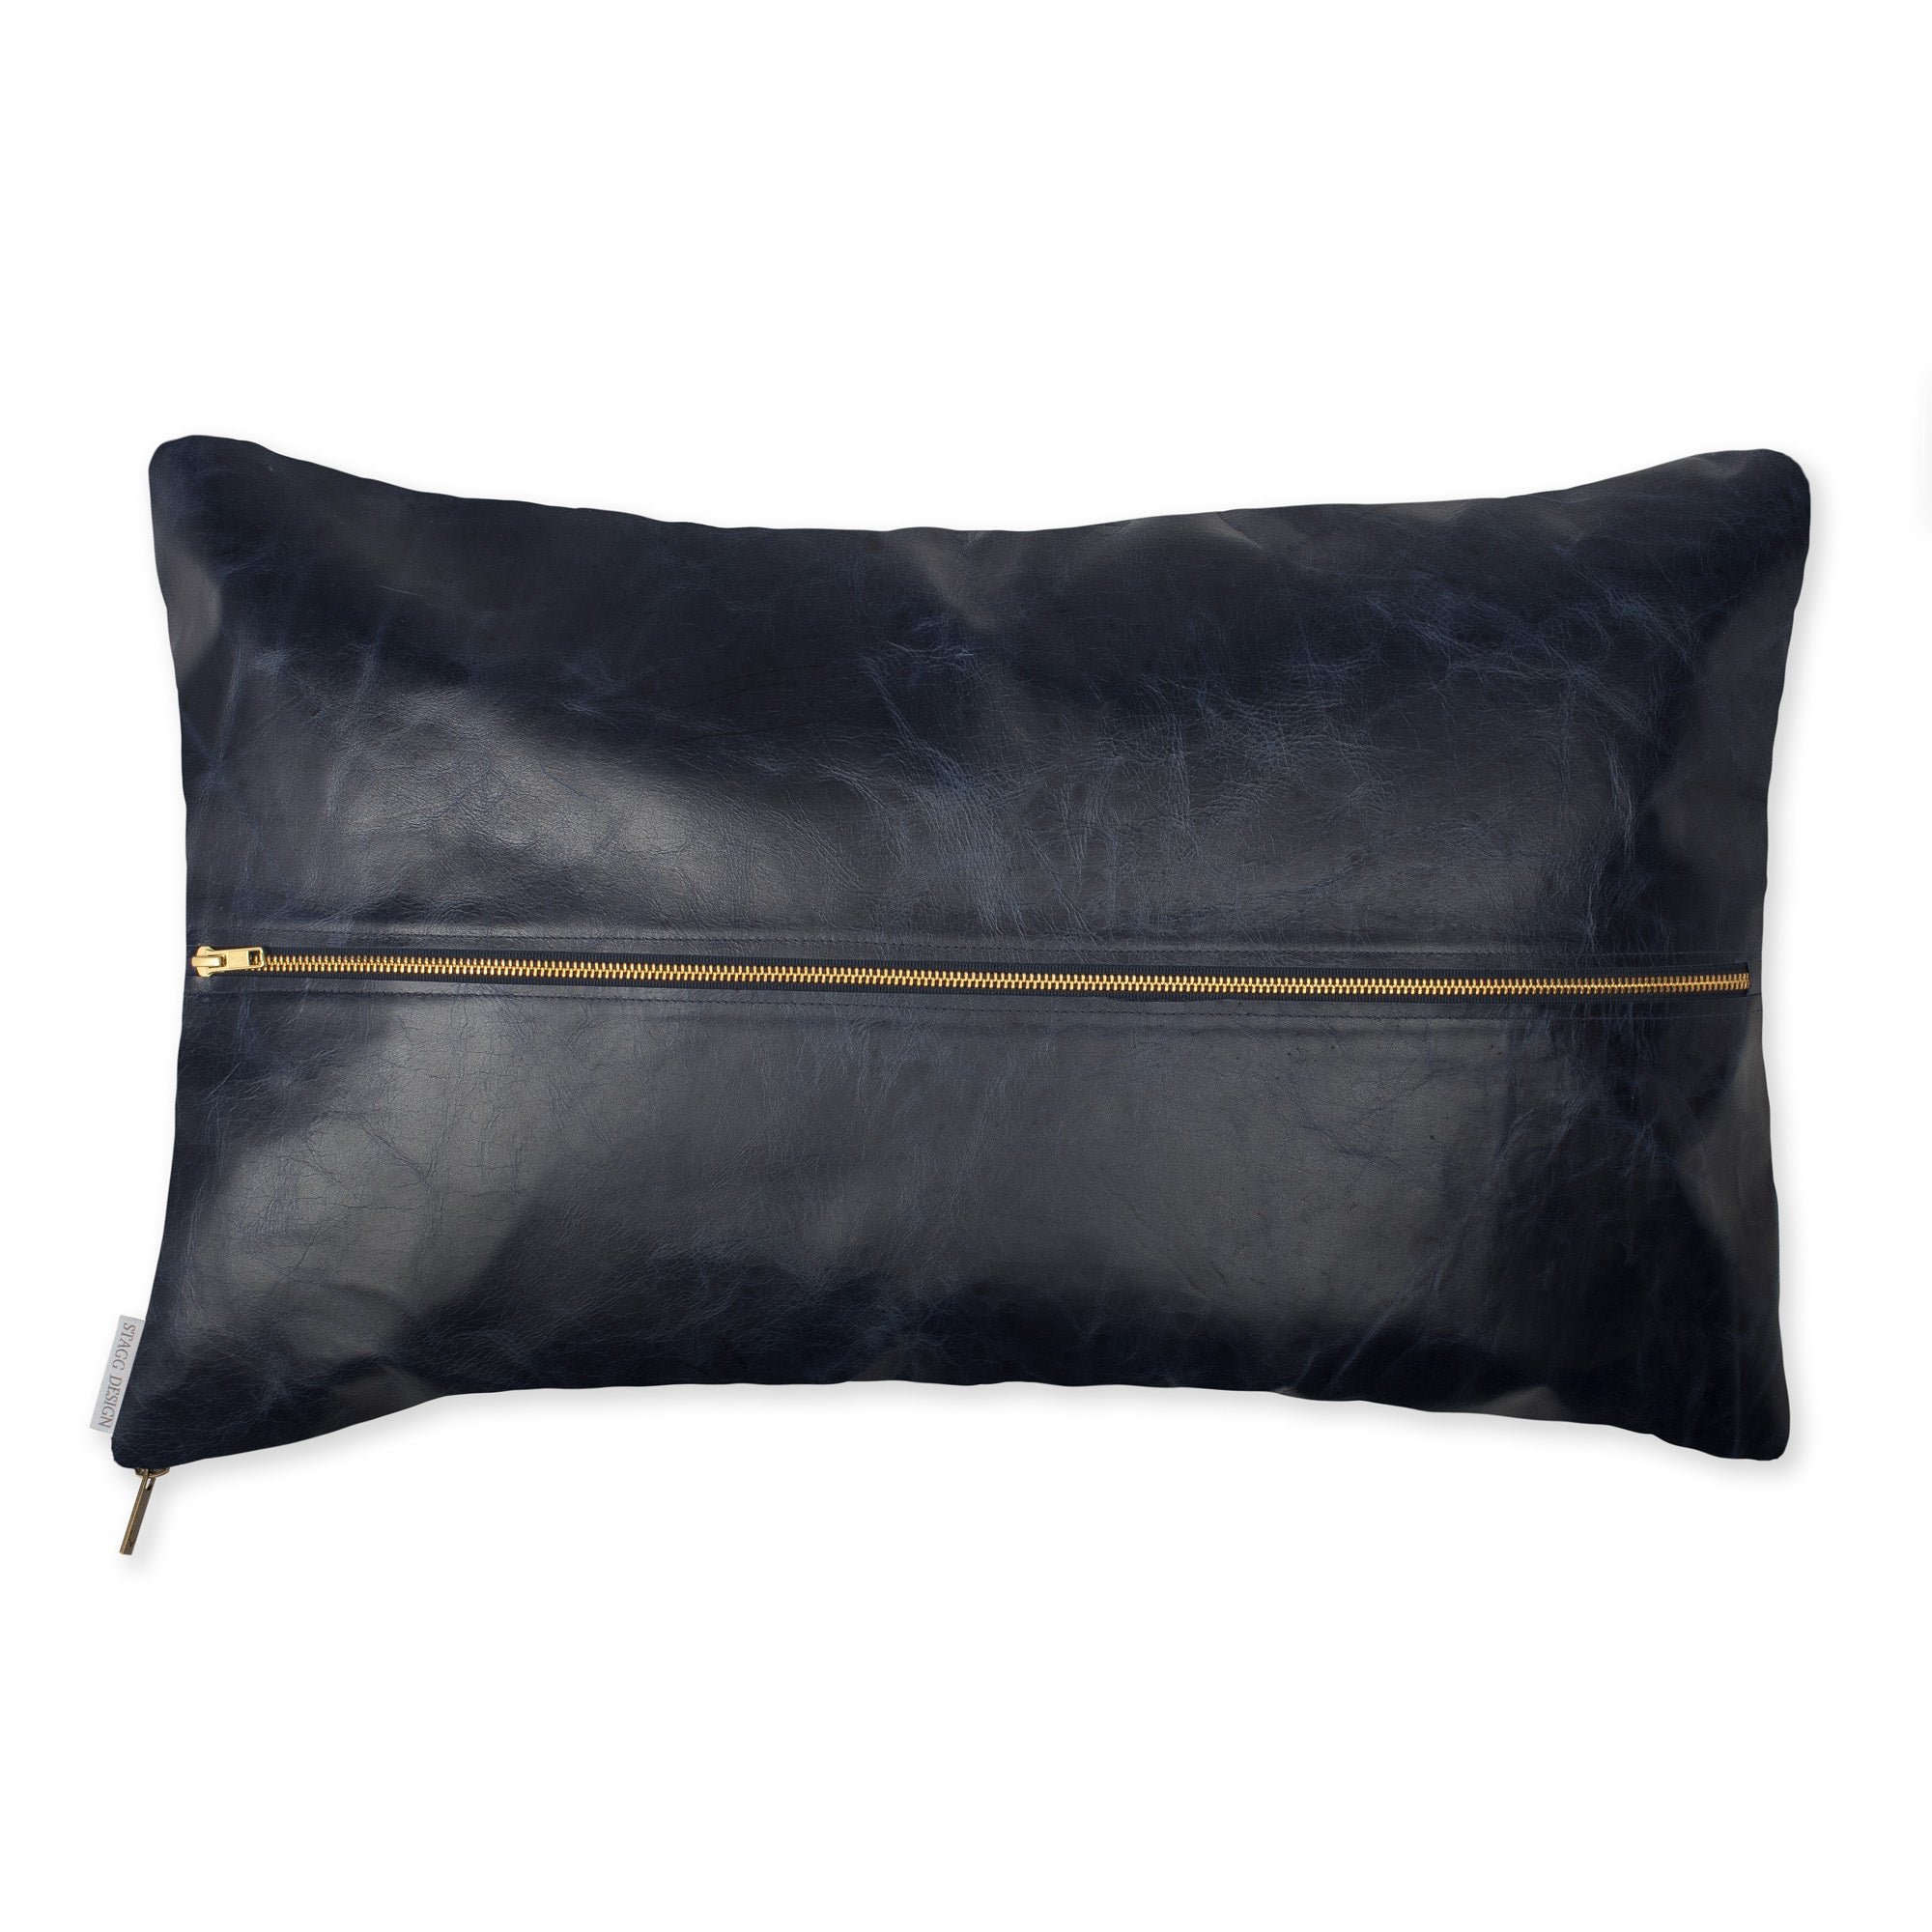 Signature Leather Pillow - Navy